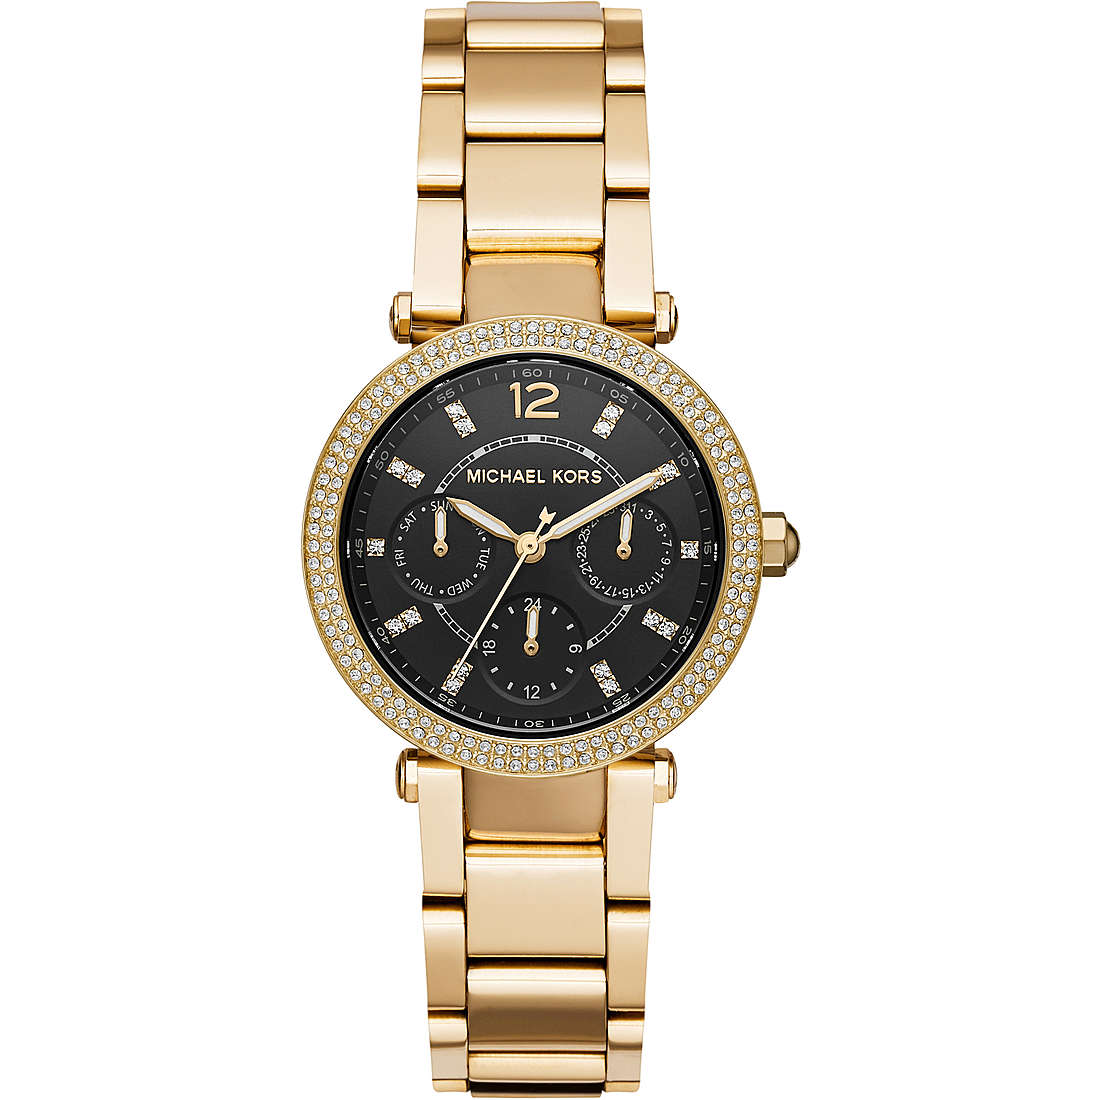 Michael Kors woman watch parker stainless steel gold color MK3790